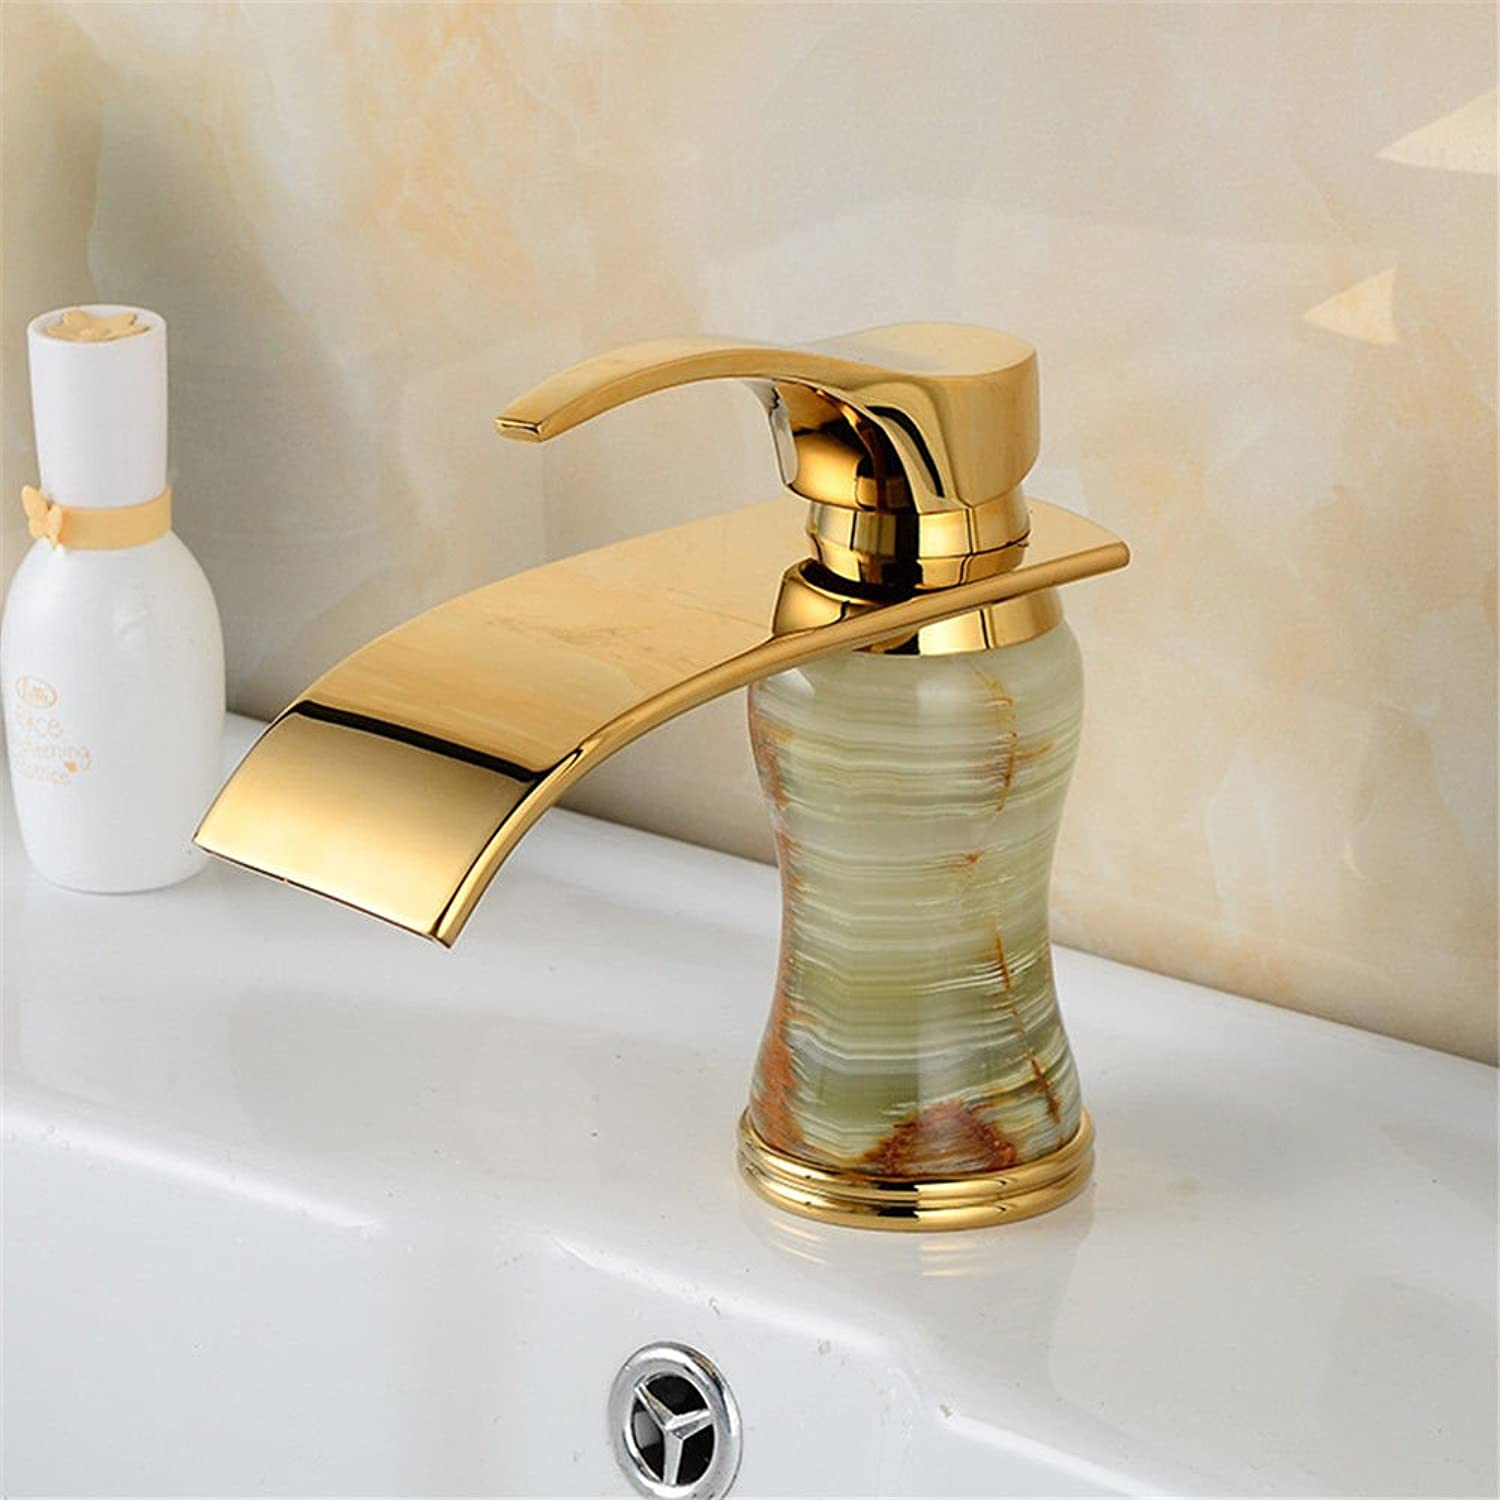 AQMMi Basin Sink Tap Bathroom Bar Faucet Hot and Cold Water Jade Single Lever Bathroom Basin Sink Faucet